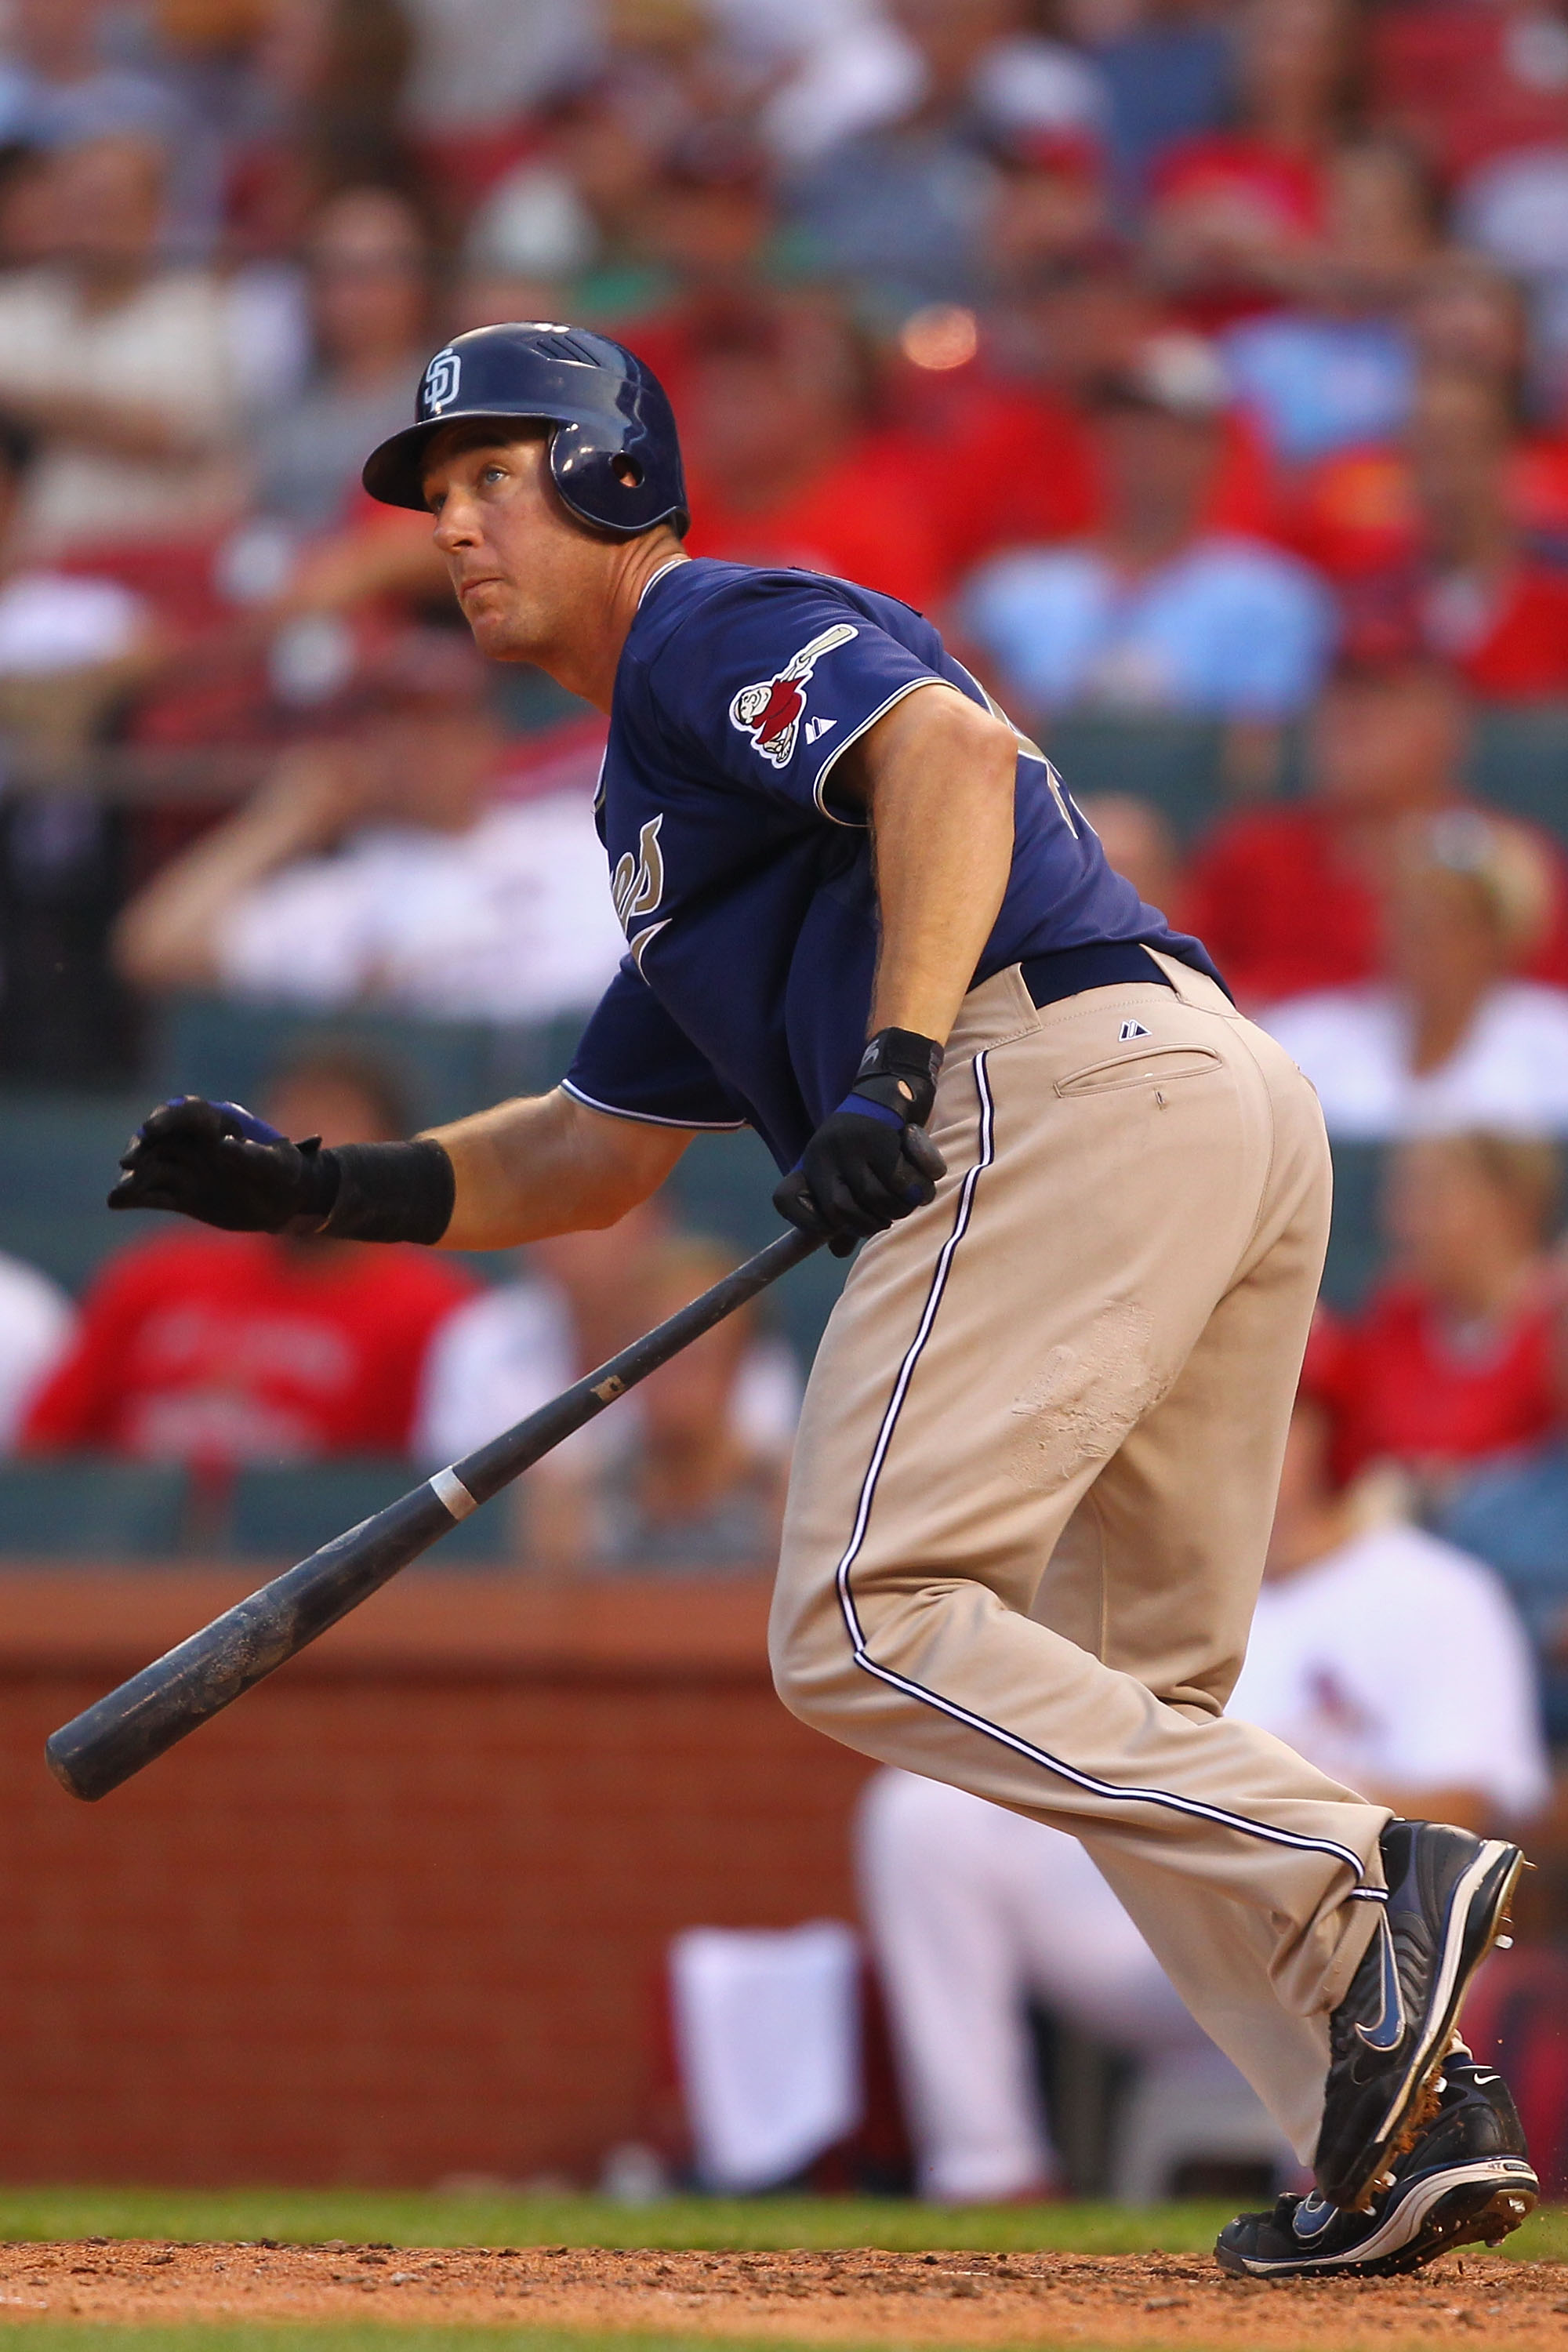 ST. LOUIS - SEPTEMBER 18: Ryan Ludwick #47 of the San Diego Padres watches his game-winning three-run home run leave the park against the St. Louis Cardinals at Busch Stadium on September 18, 2010 in St. Louis, Missouri.  The Padres beat the Cardinals 8-4